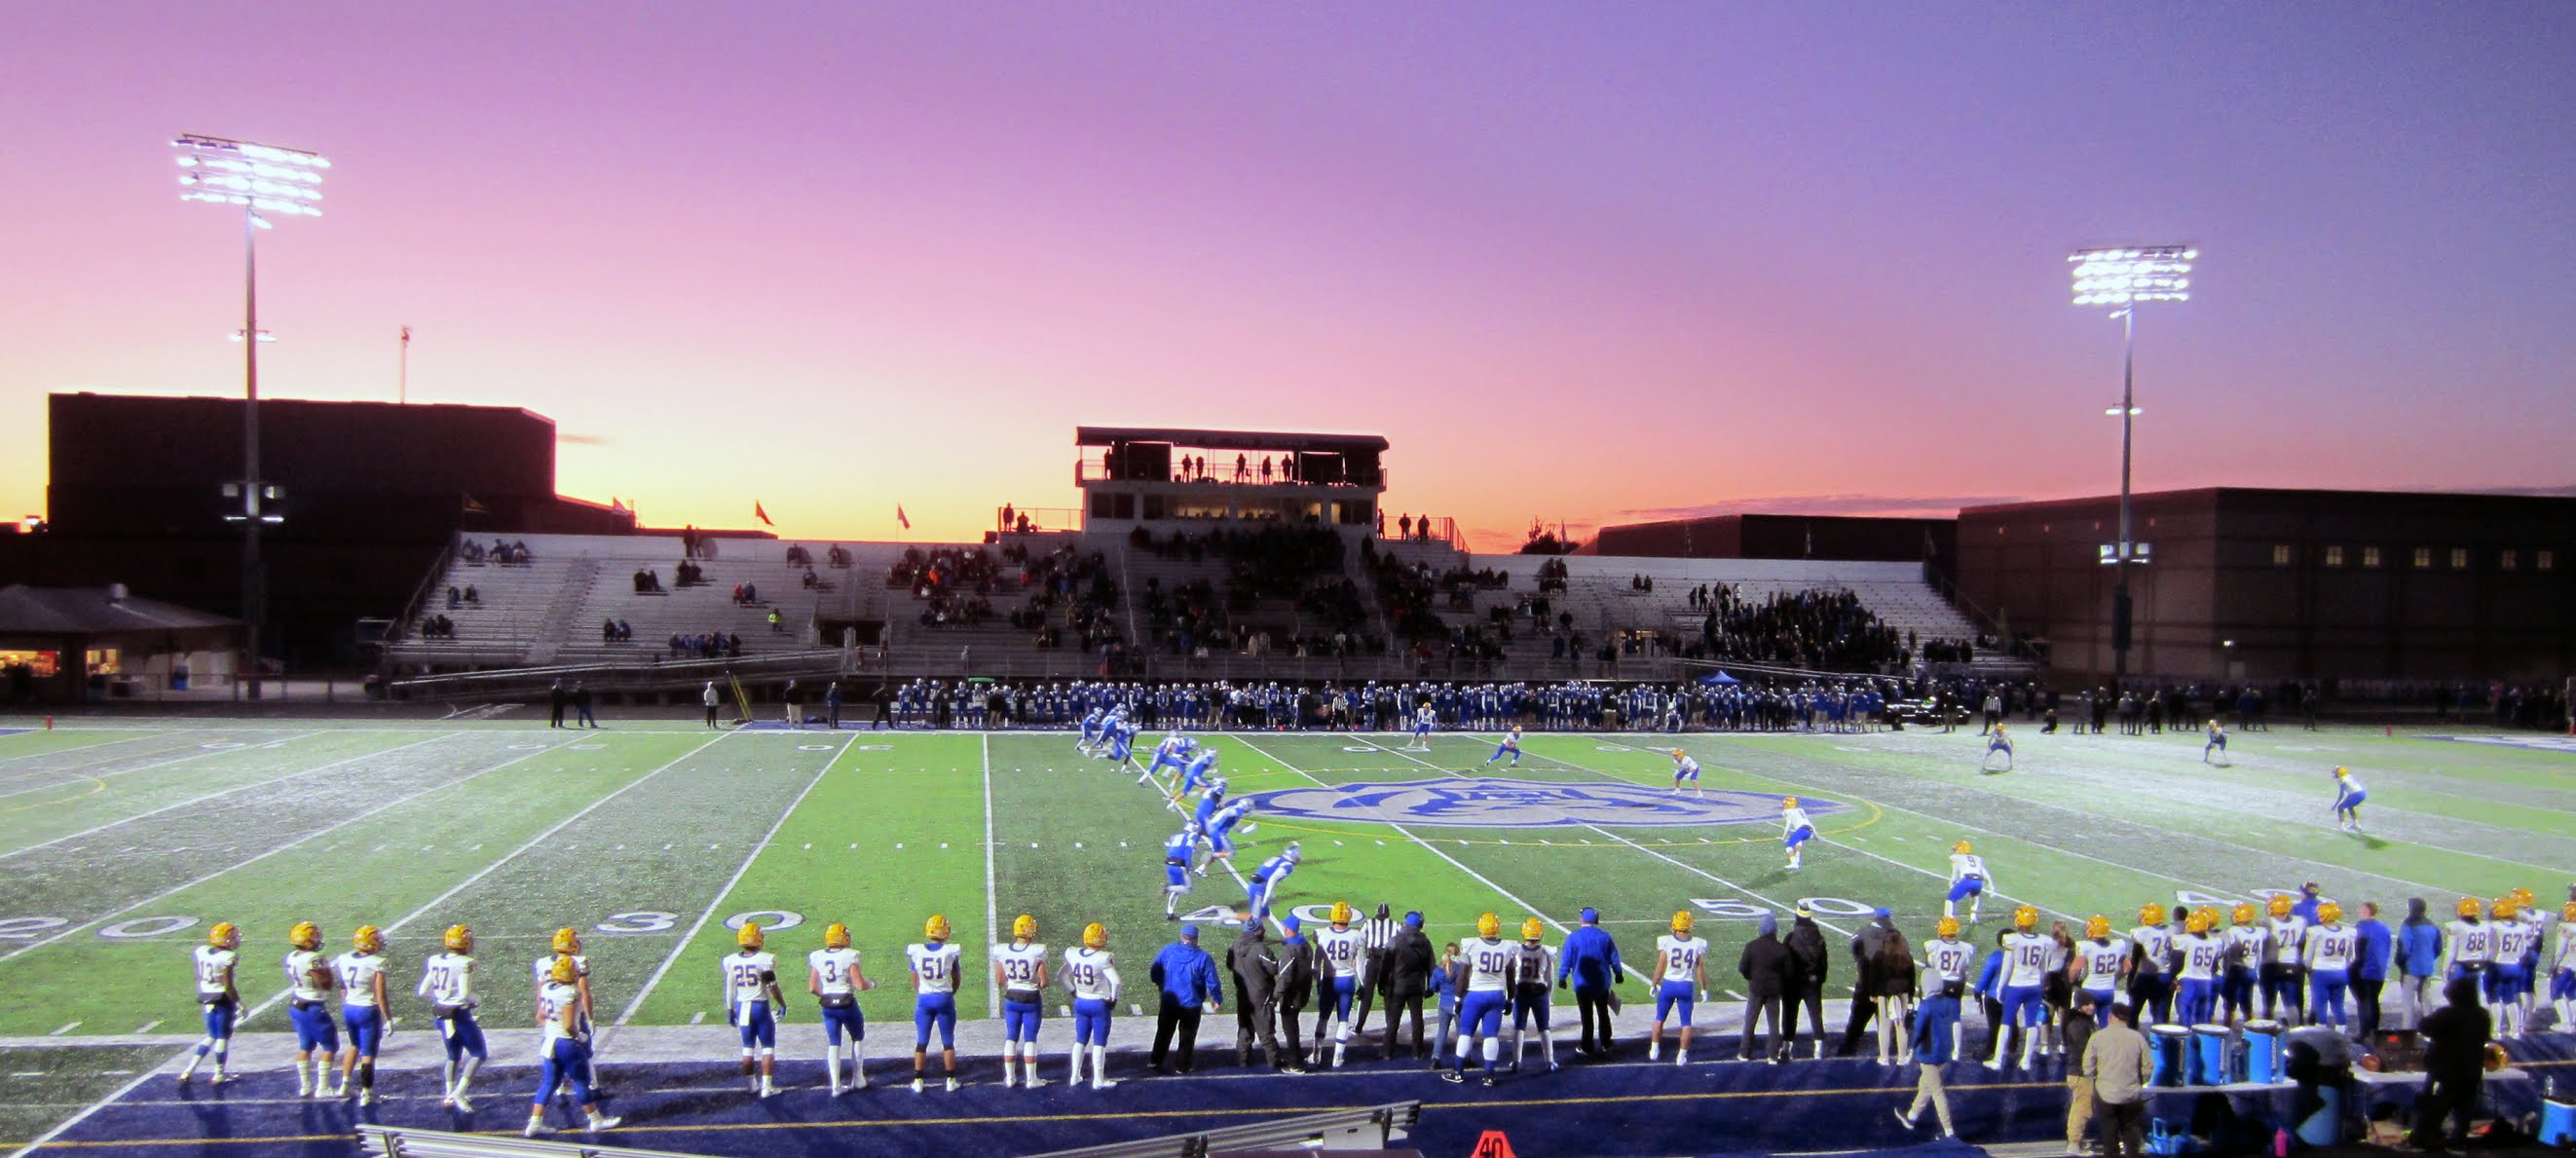 Kick off in the game between Hamilton Southeastern Royals and Carmel Greyhounds